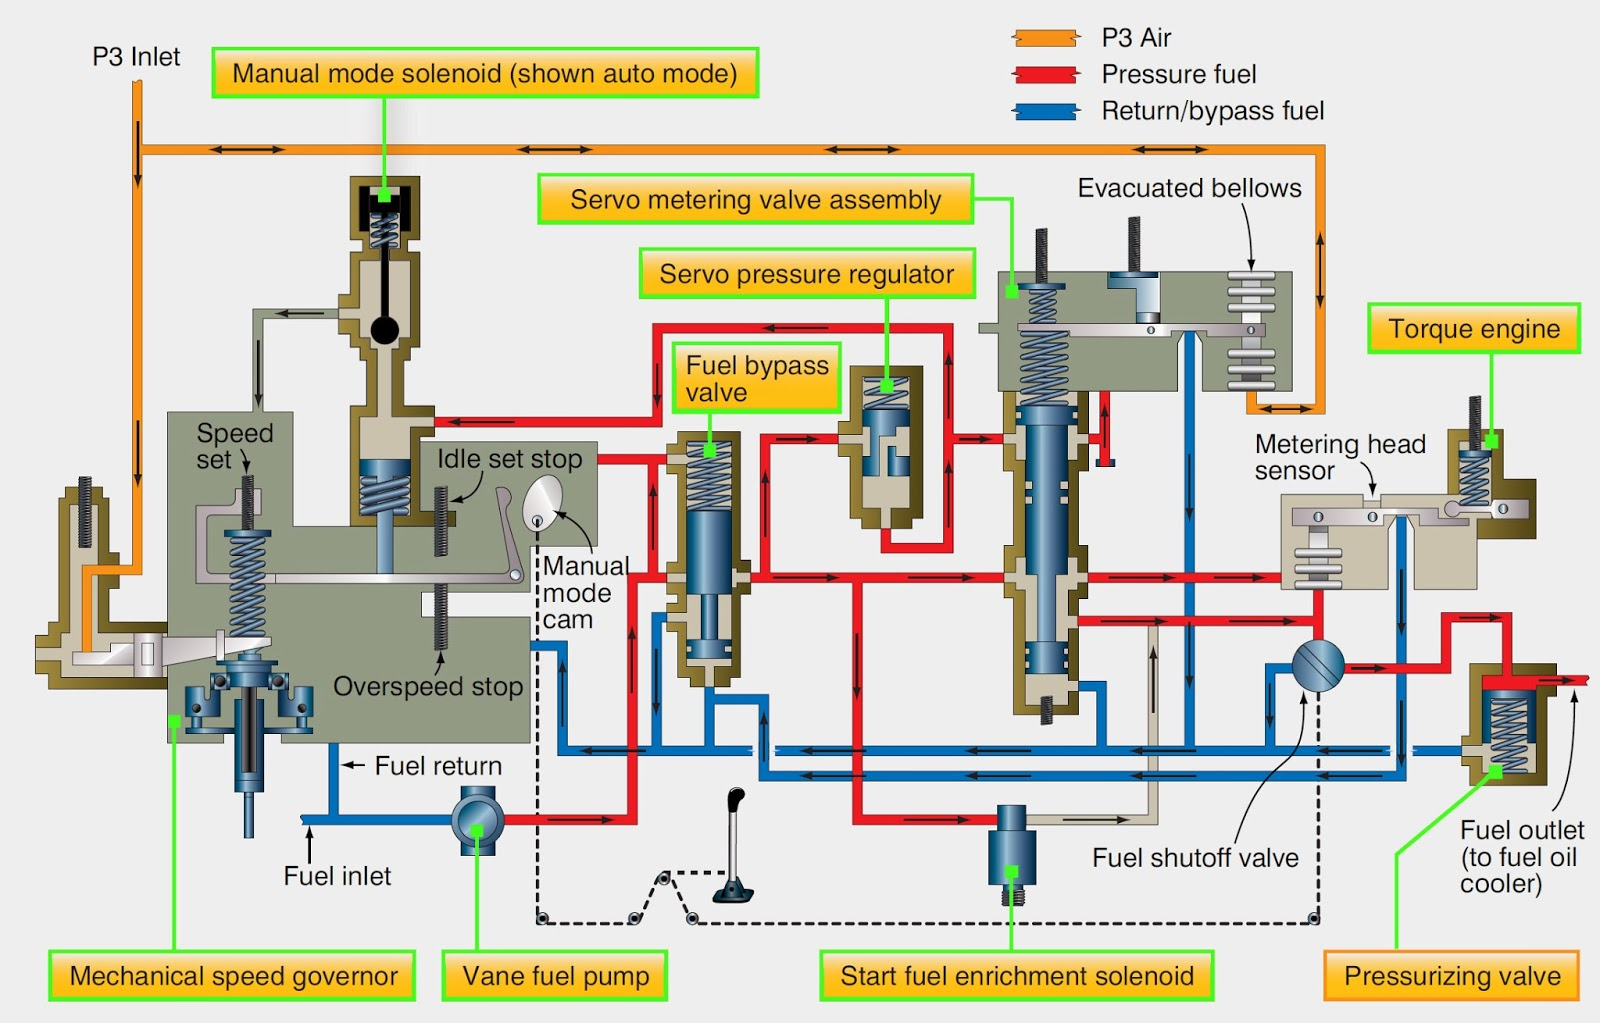 Fuel+control+assembly+schematic+hydomechanical+electronic aircraft systems turbine engine fuel system general requirements bpc-1 dual fuel control wiring diagram at gsmx.co